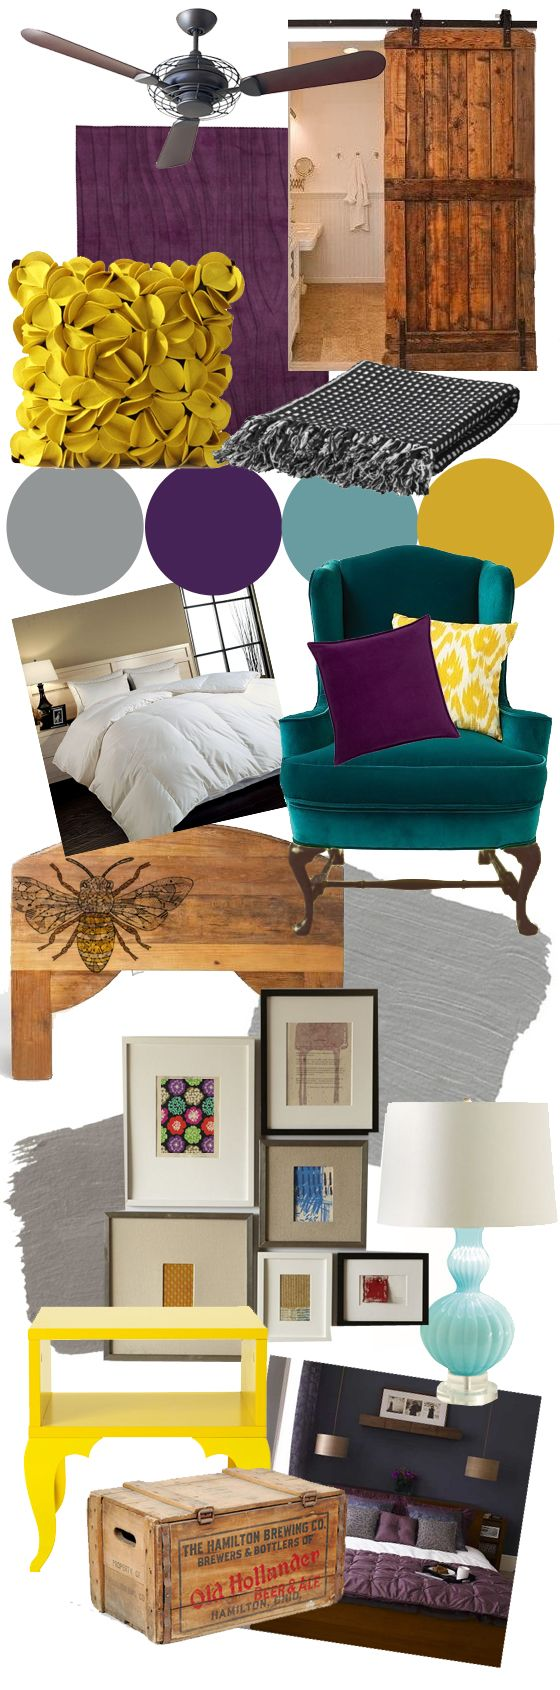 similar colors mood board... But instead of purple, maybe